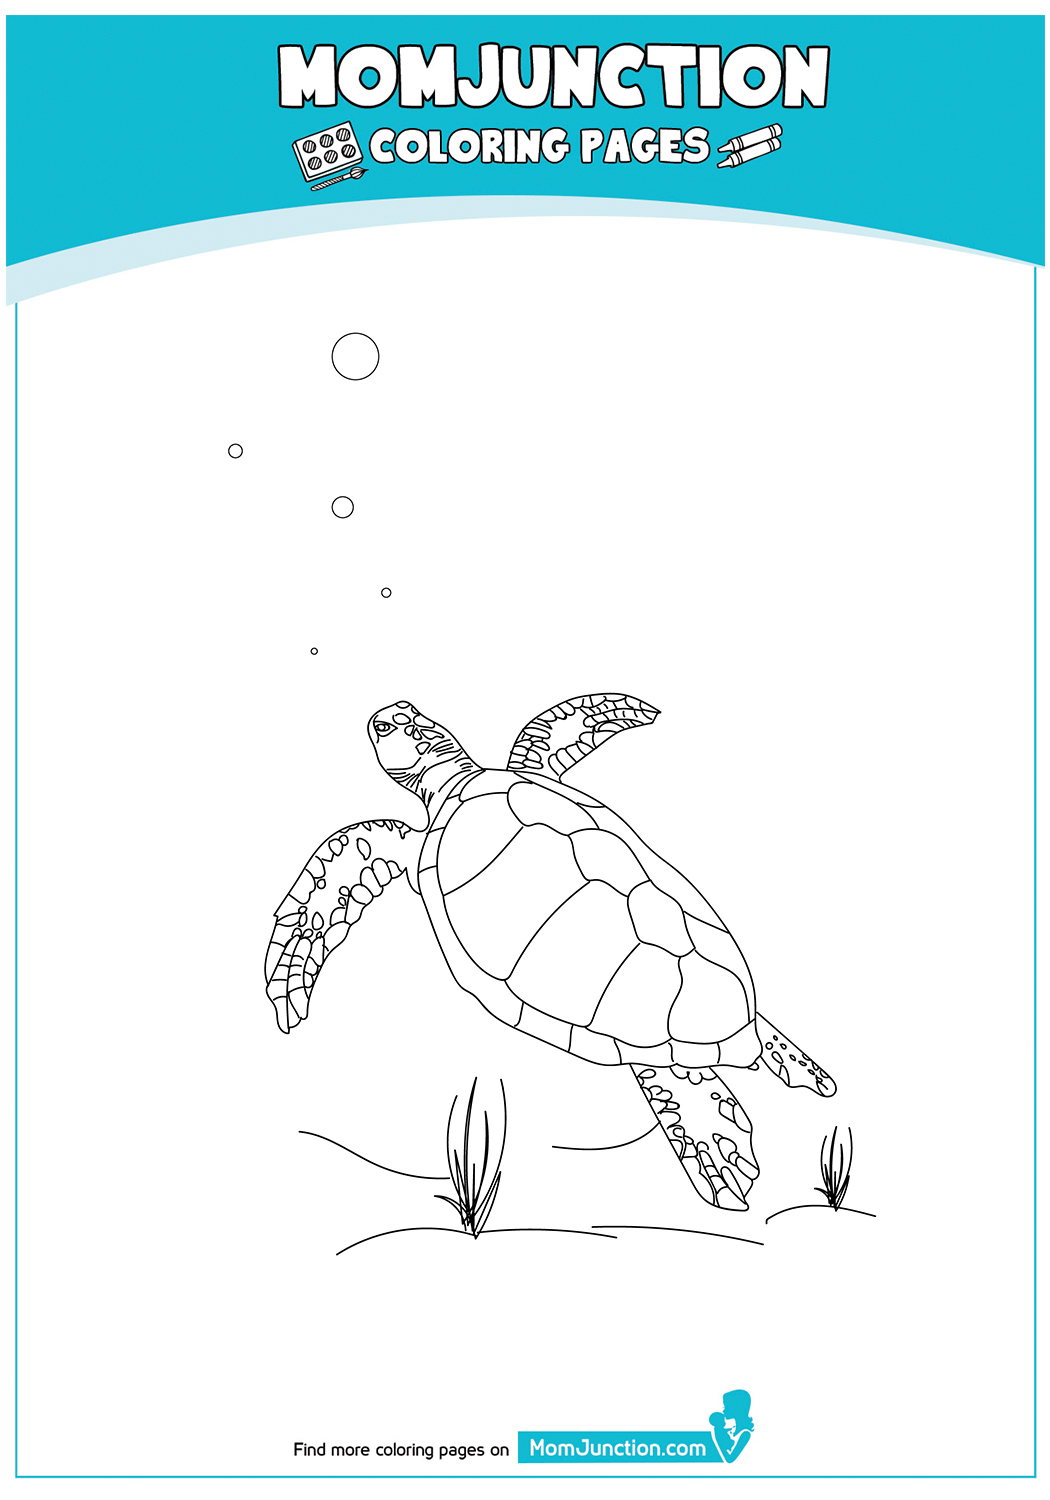 The-Loggerhead-Turtle-Color-17